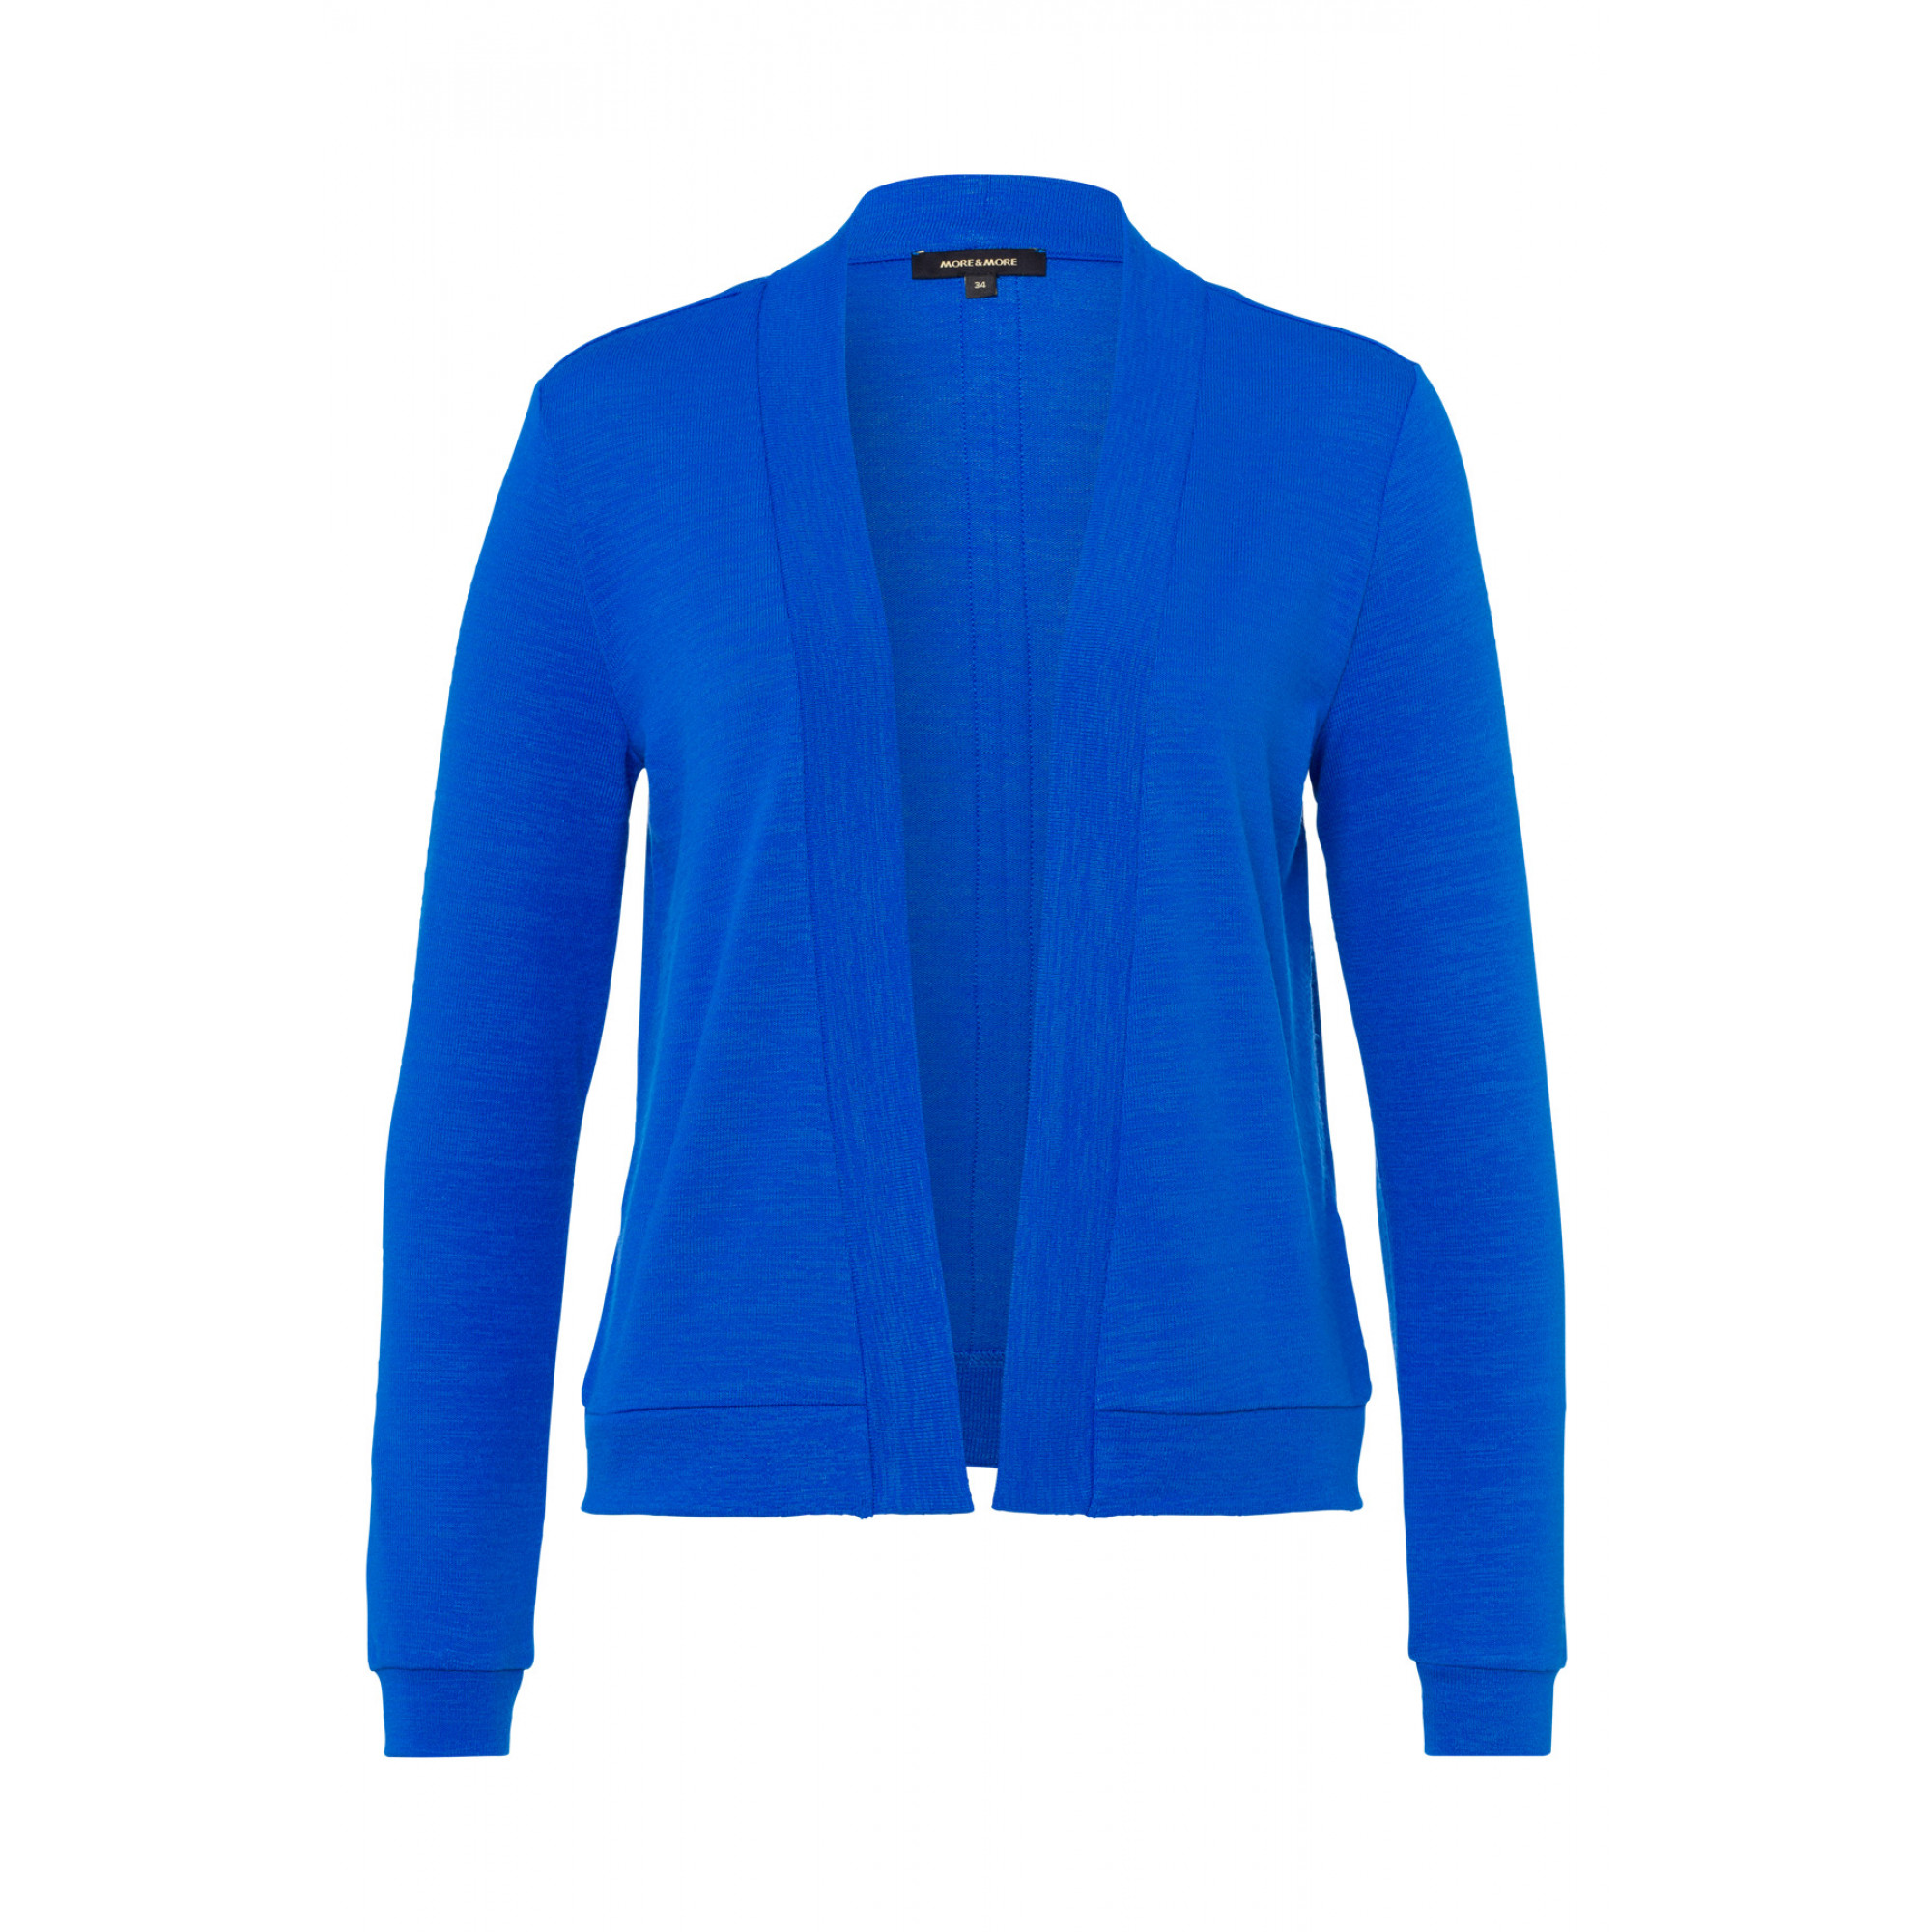 Shirtjacke, nautic blue 91040517-0331 1